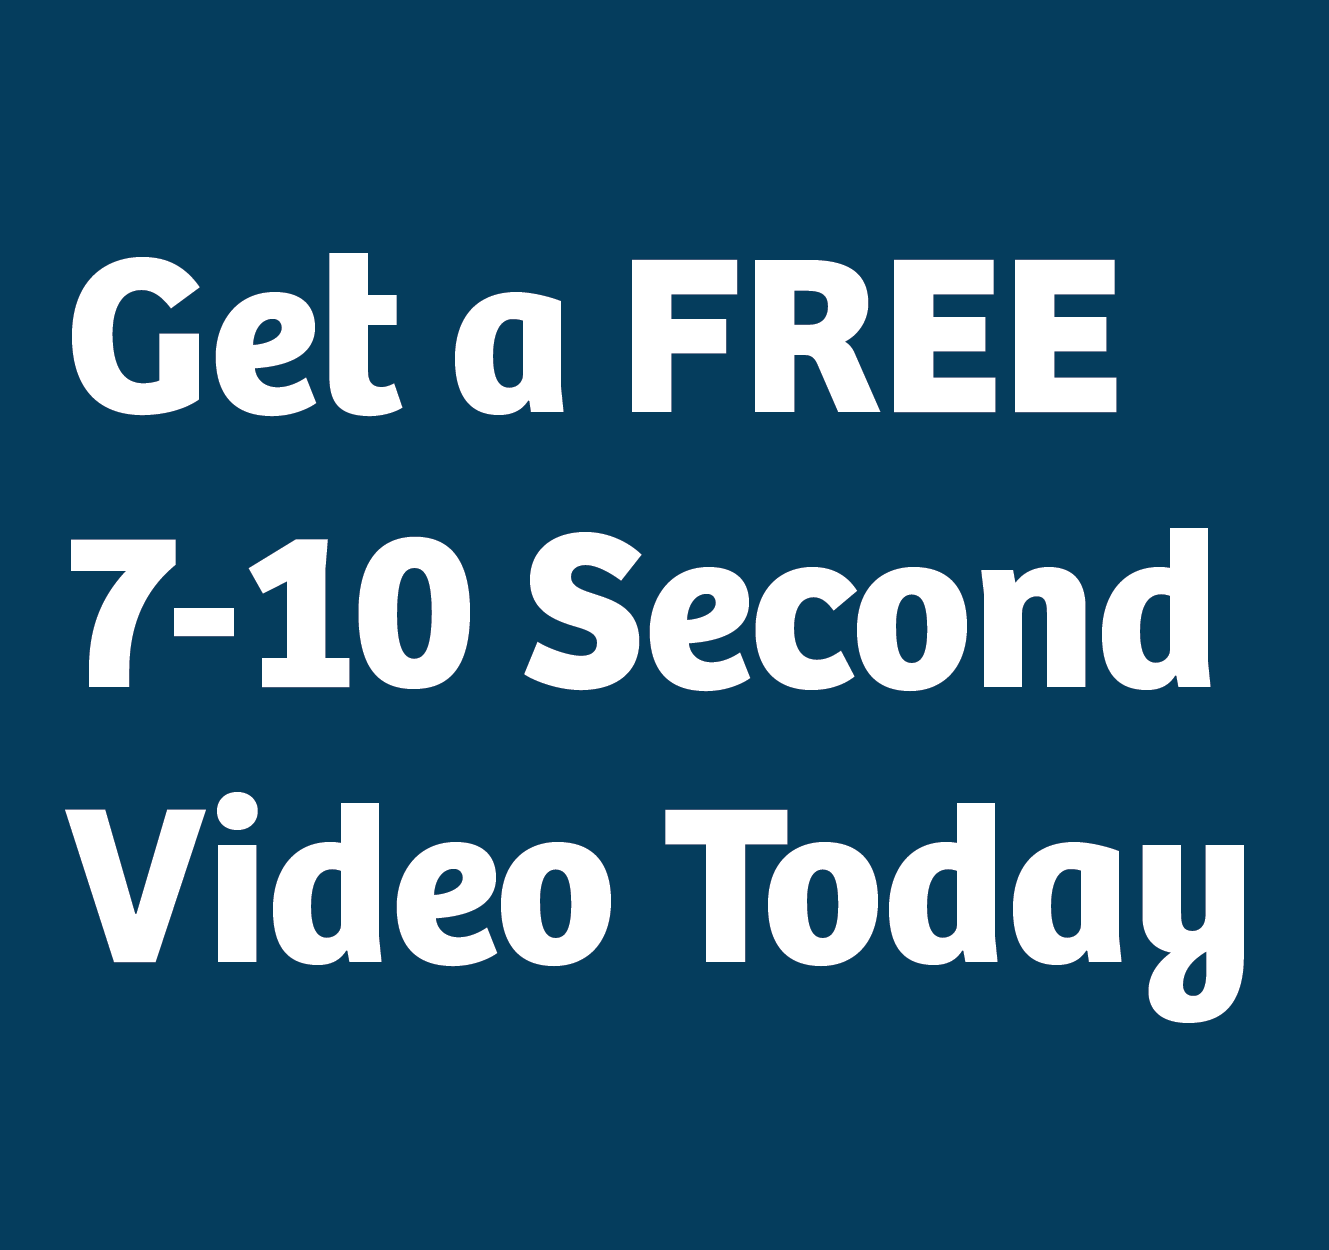 FreeVideo-05.png